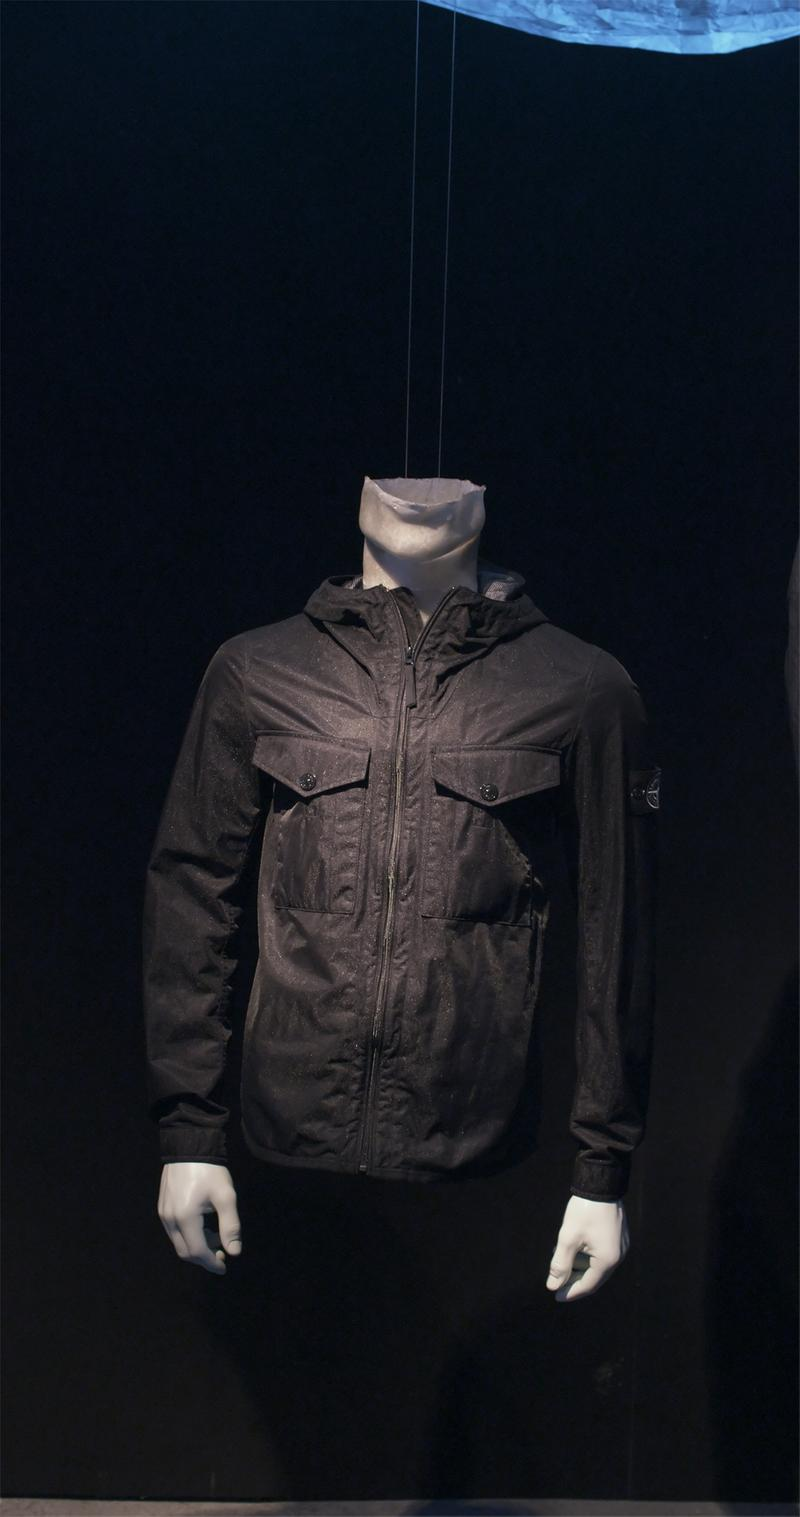 Black zip up jacket with flap pockets on the chest and hood displayed on mannequin bust